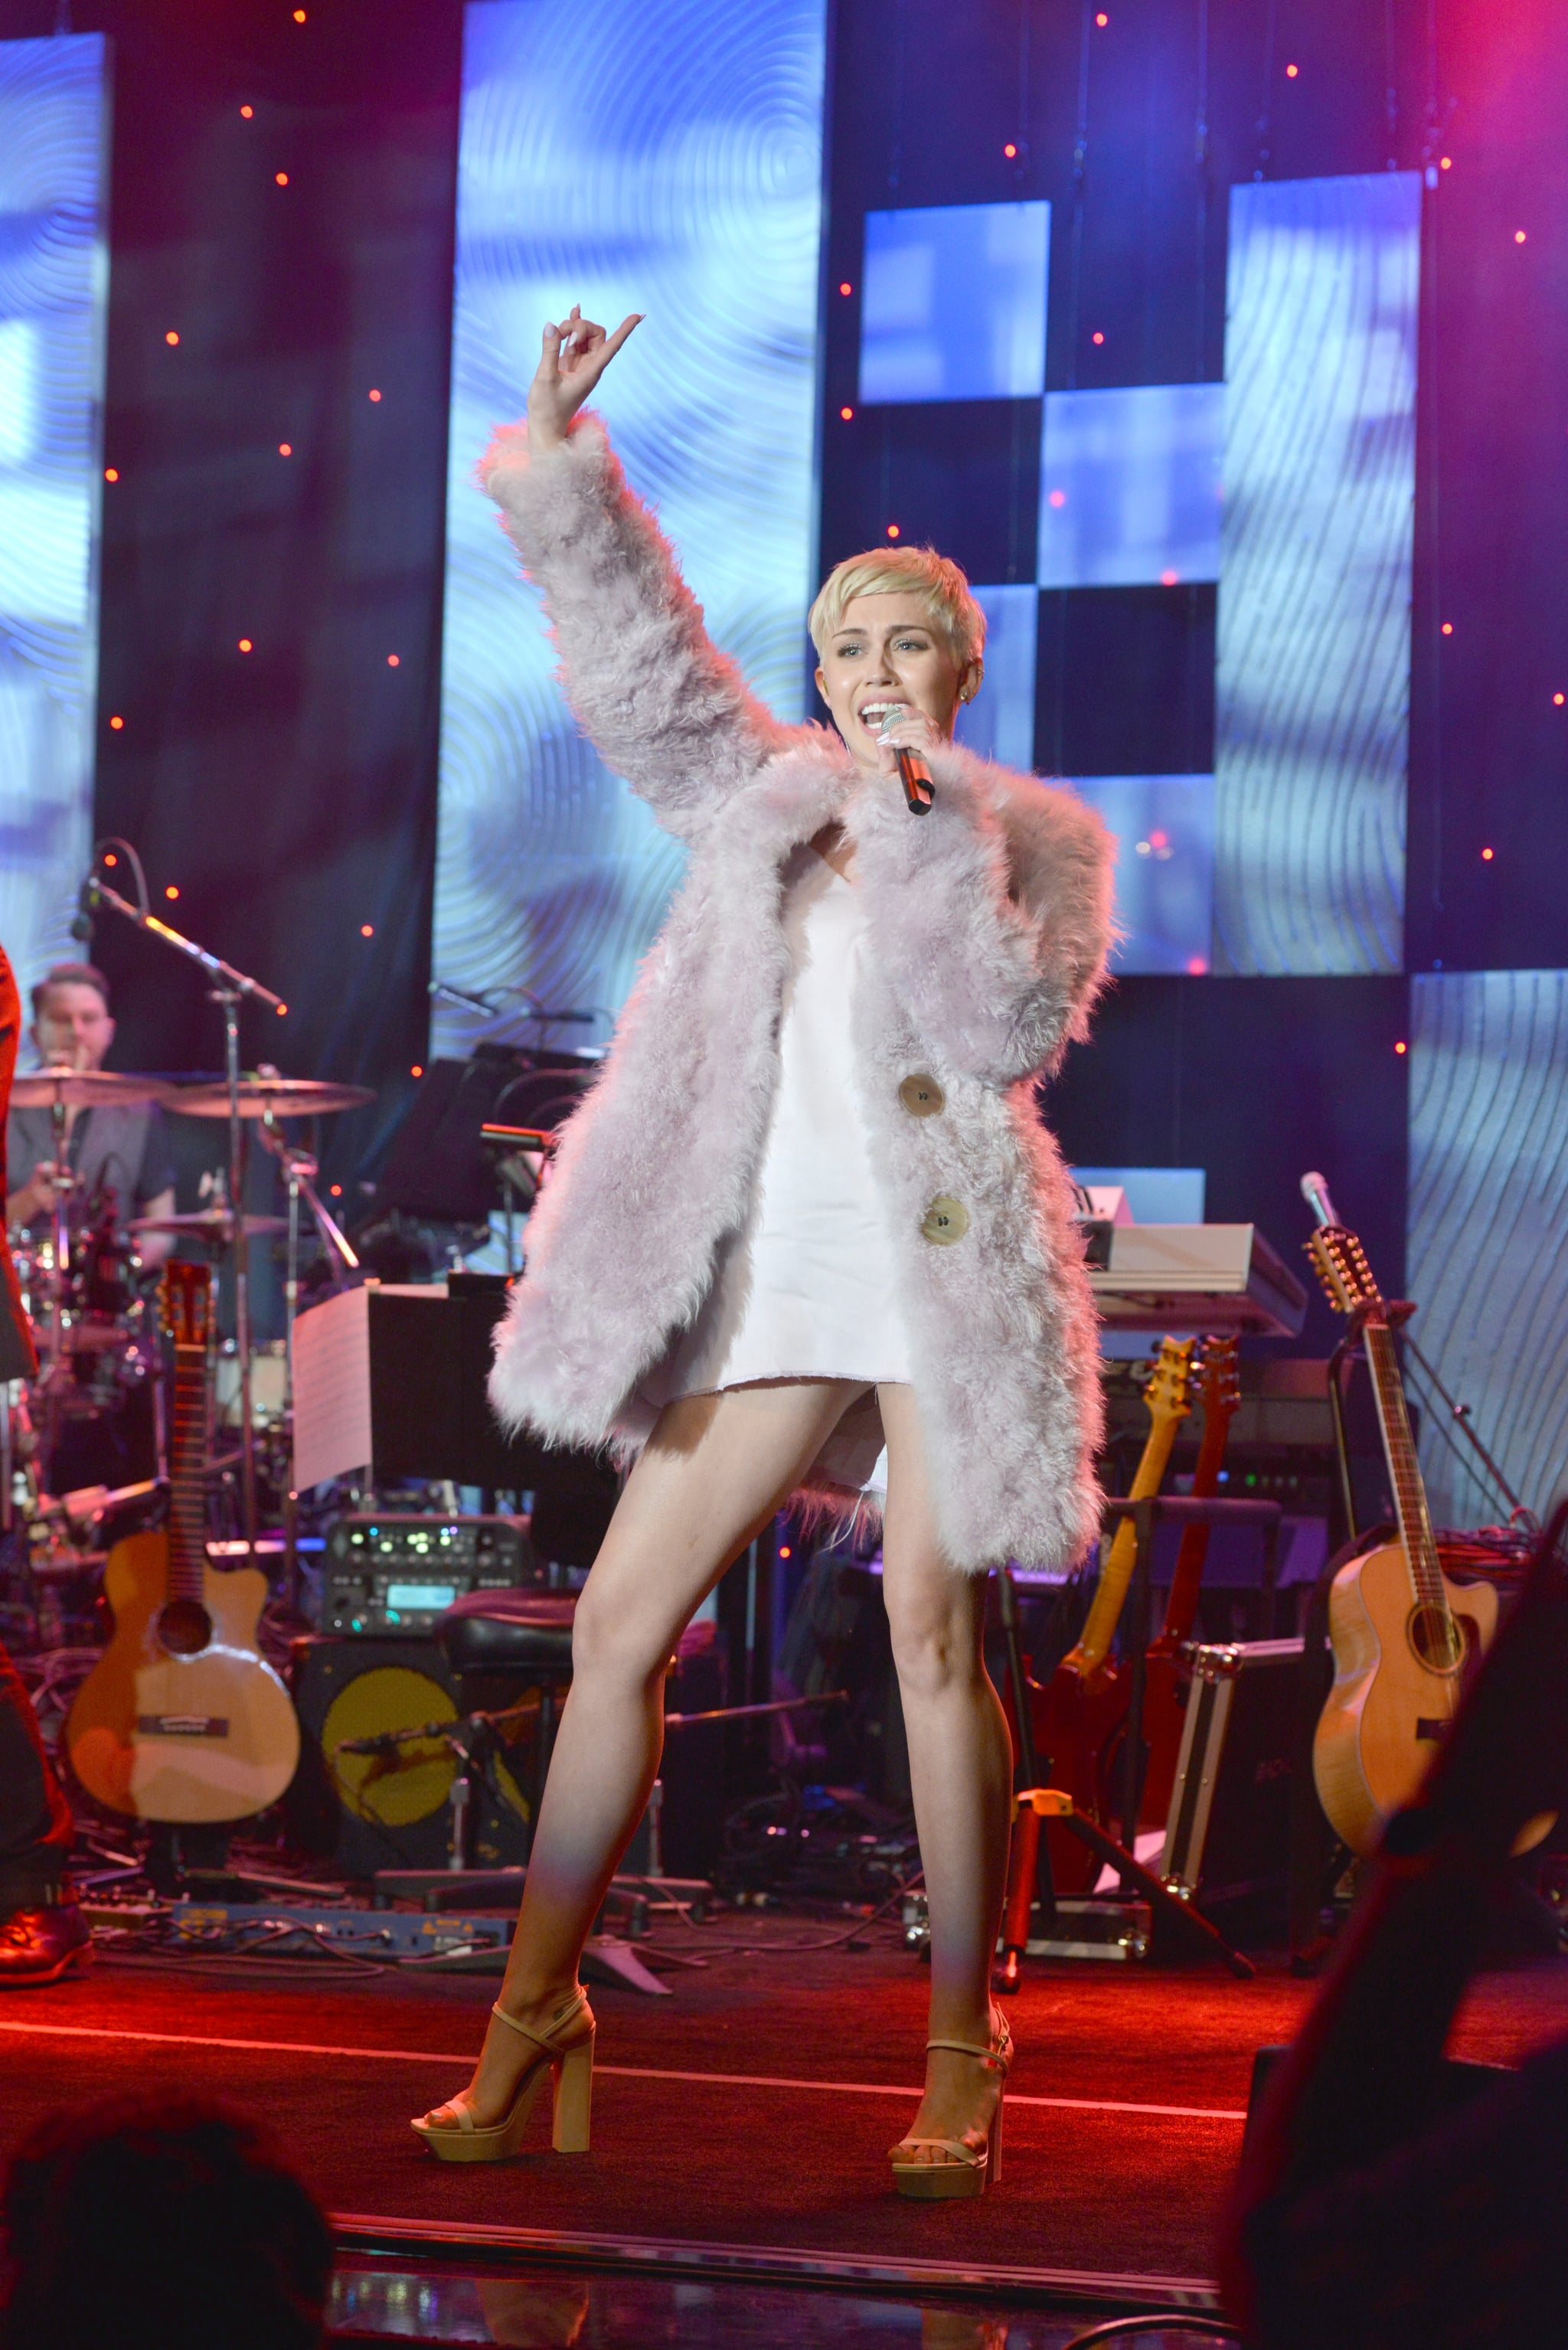 Miley Cyrus struck a confident pose on stage.